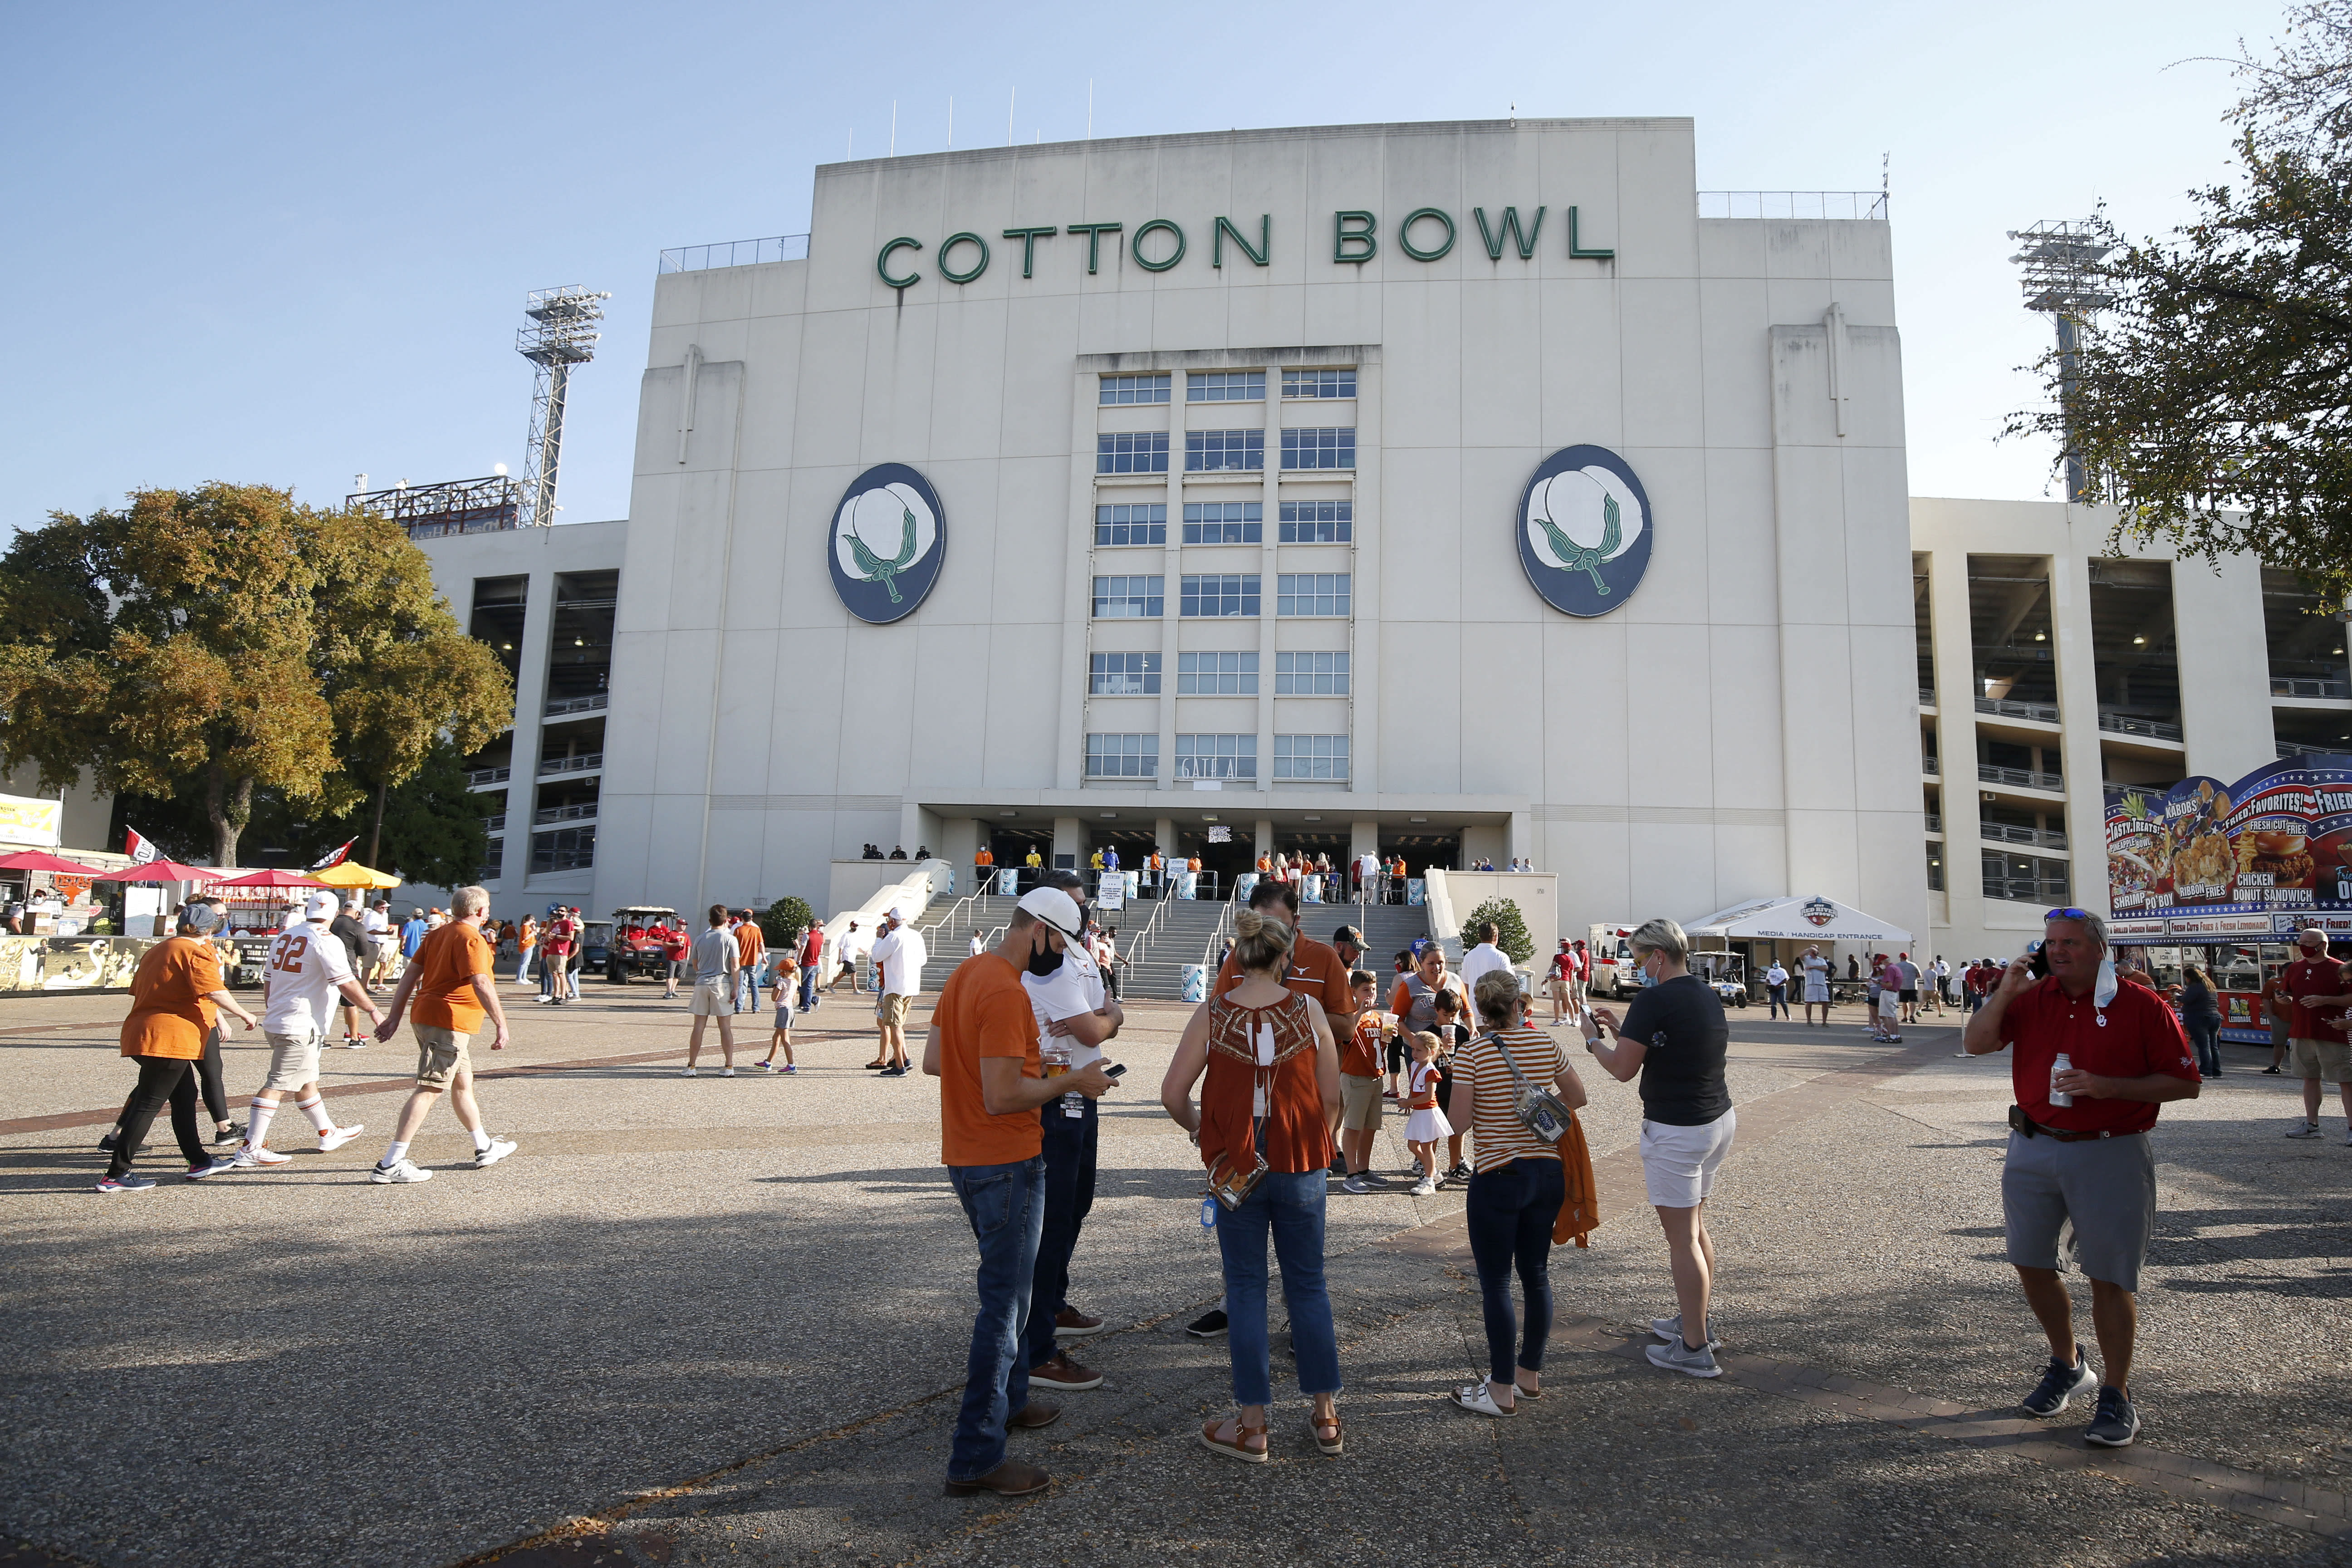 A smaller crowd, due to seating restrictions, mingles outside the Cotton Bowl prior to an NCAA college football game between the University of Texas and Oklahoma, in Dallas Saturday, Oct. 10, 2020. (AP Photo/Michael Ainsworth)